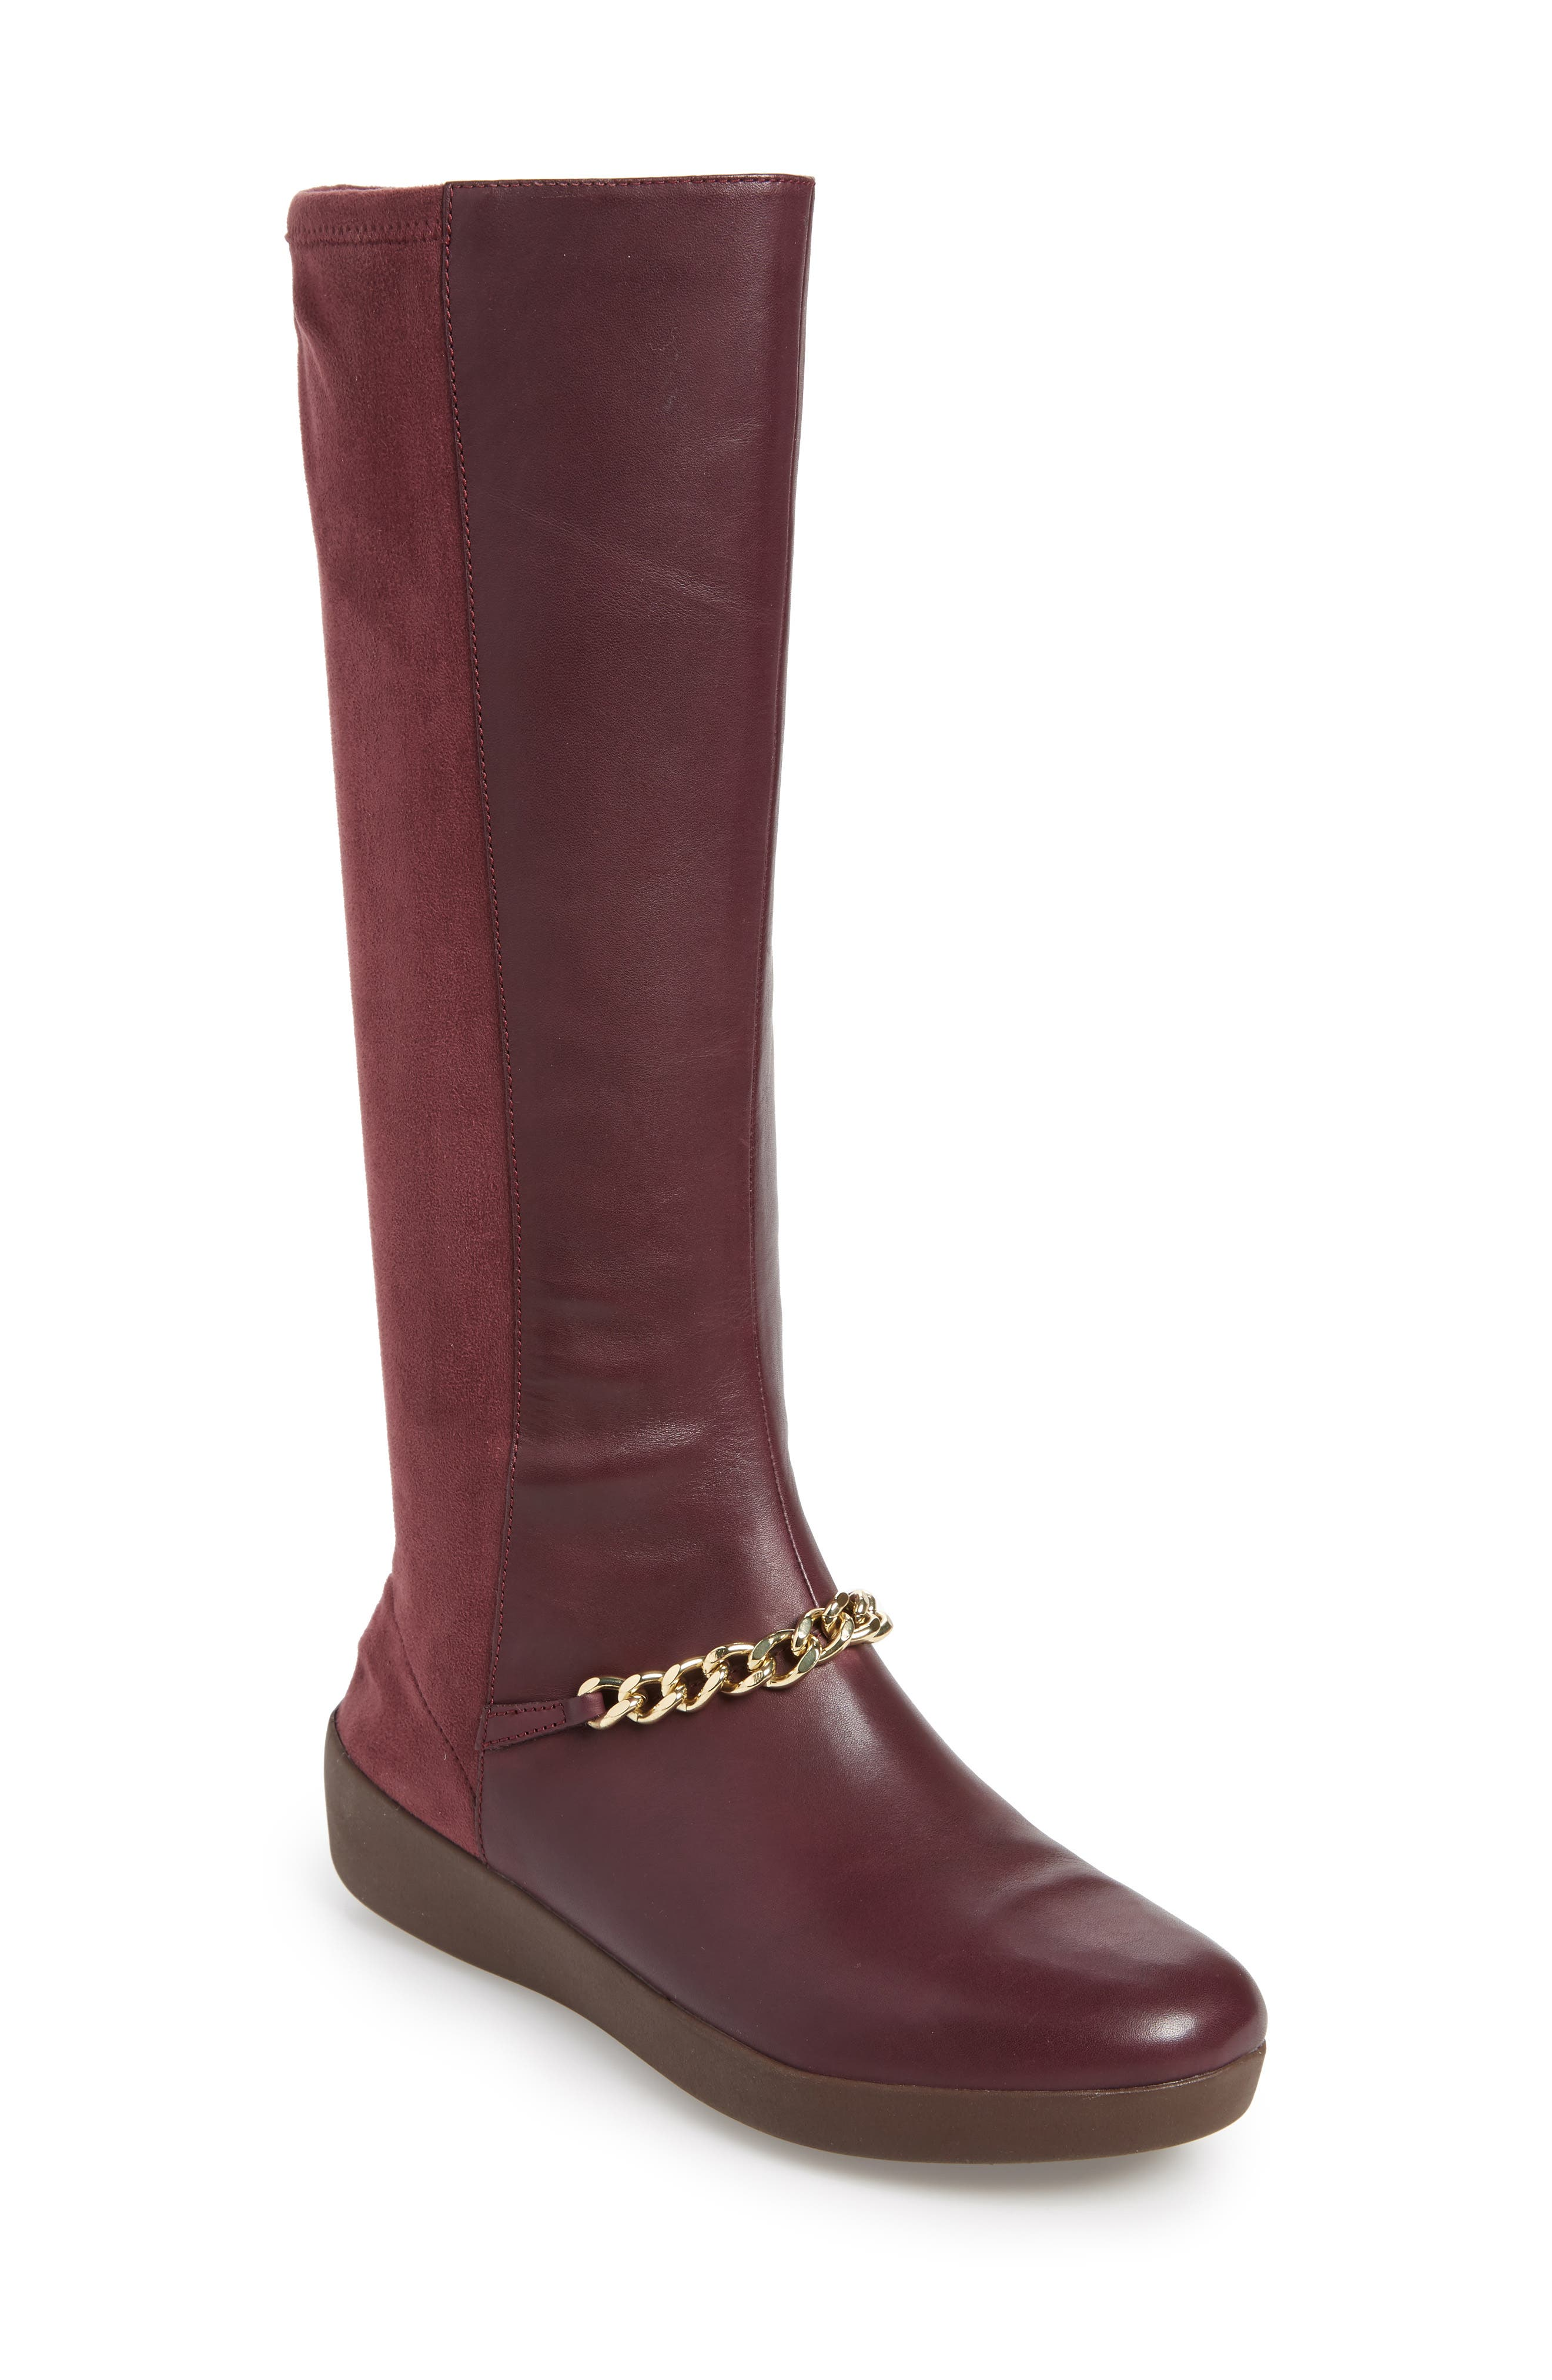 Fitflop Fifi Knee High Boot, Burgundy